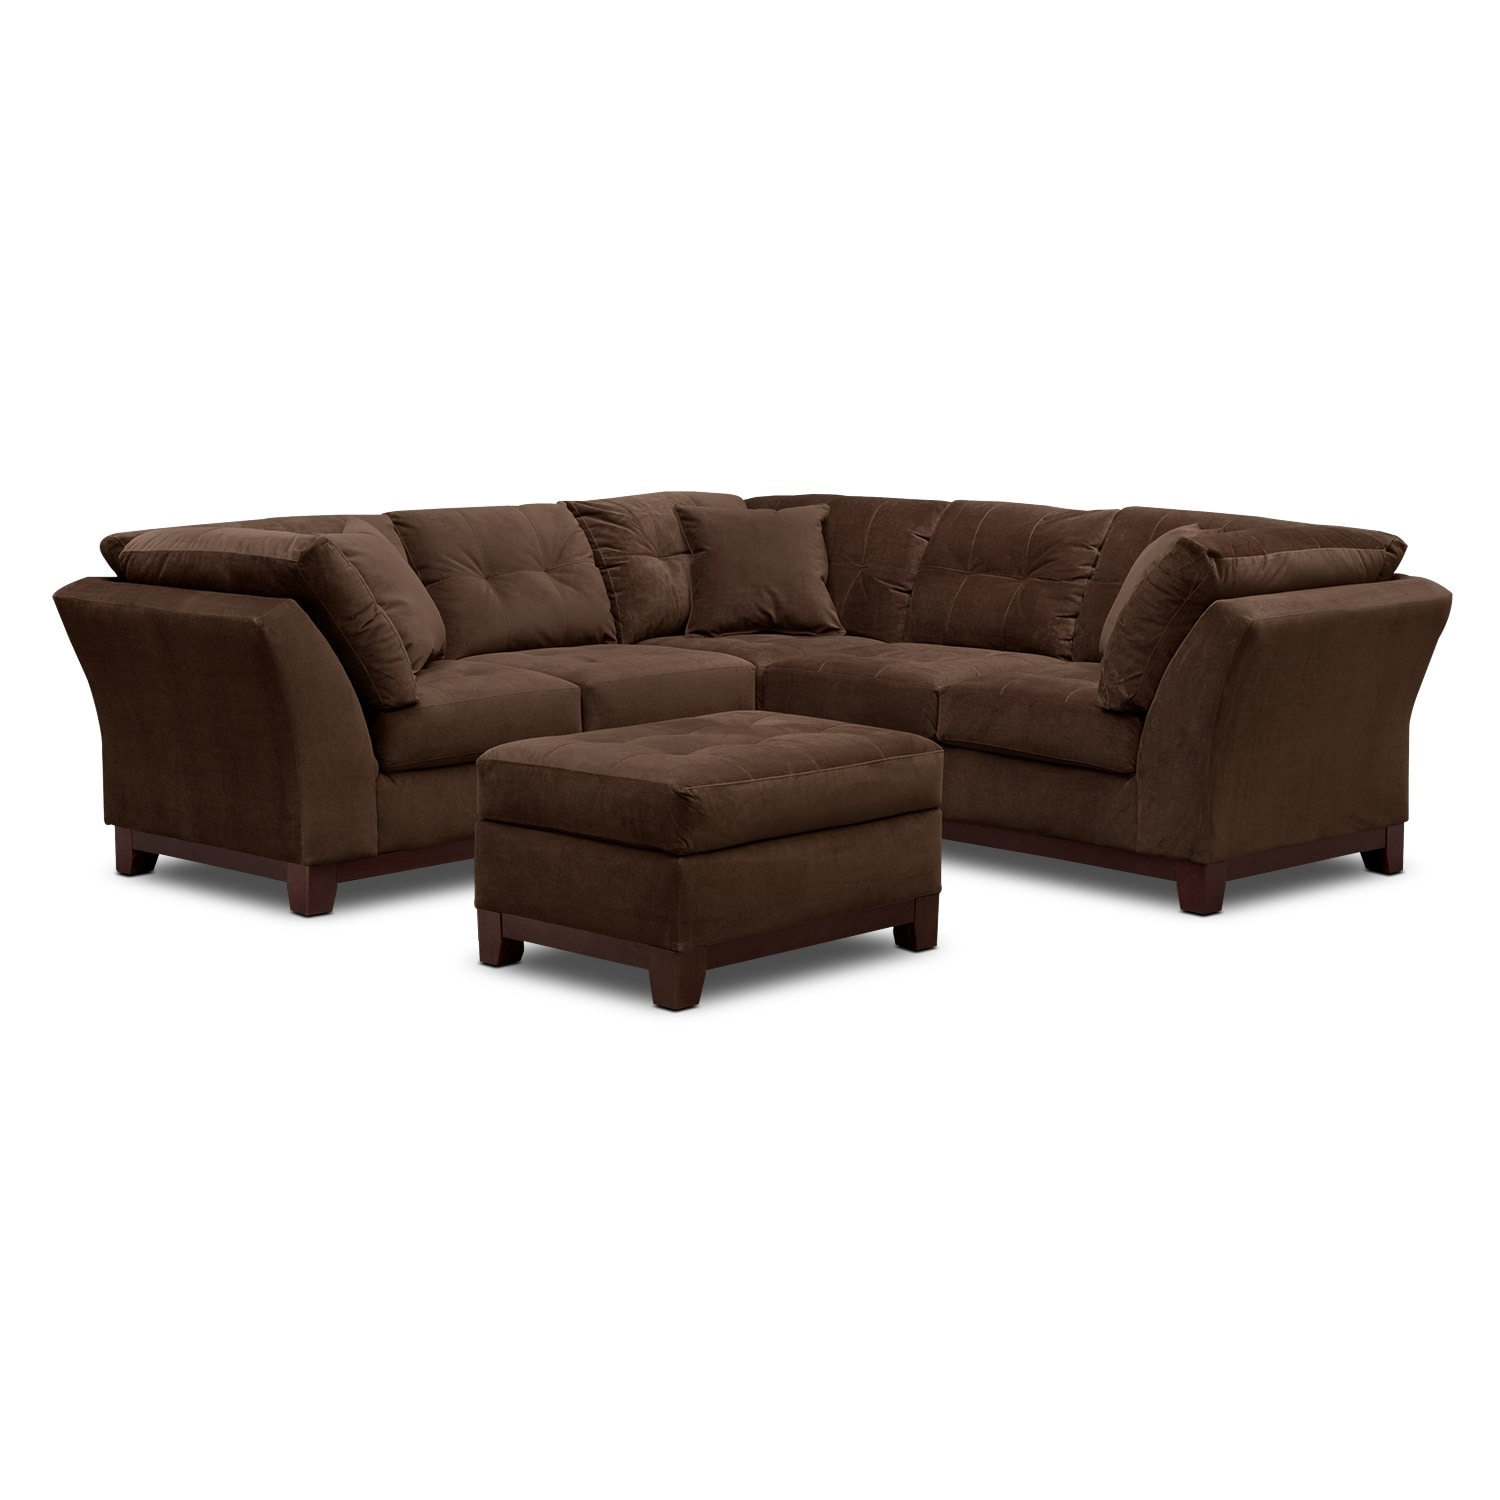 Living Room Furniture - Solace Chocolate II 2 Pc. Sectional (Alternate II) and Ottoman